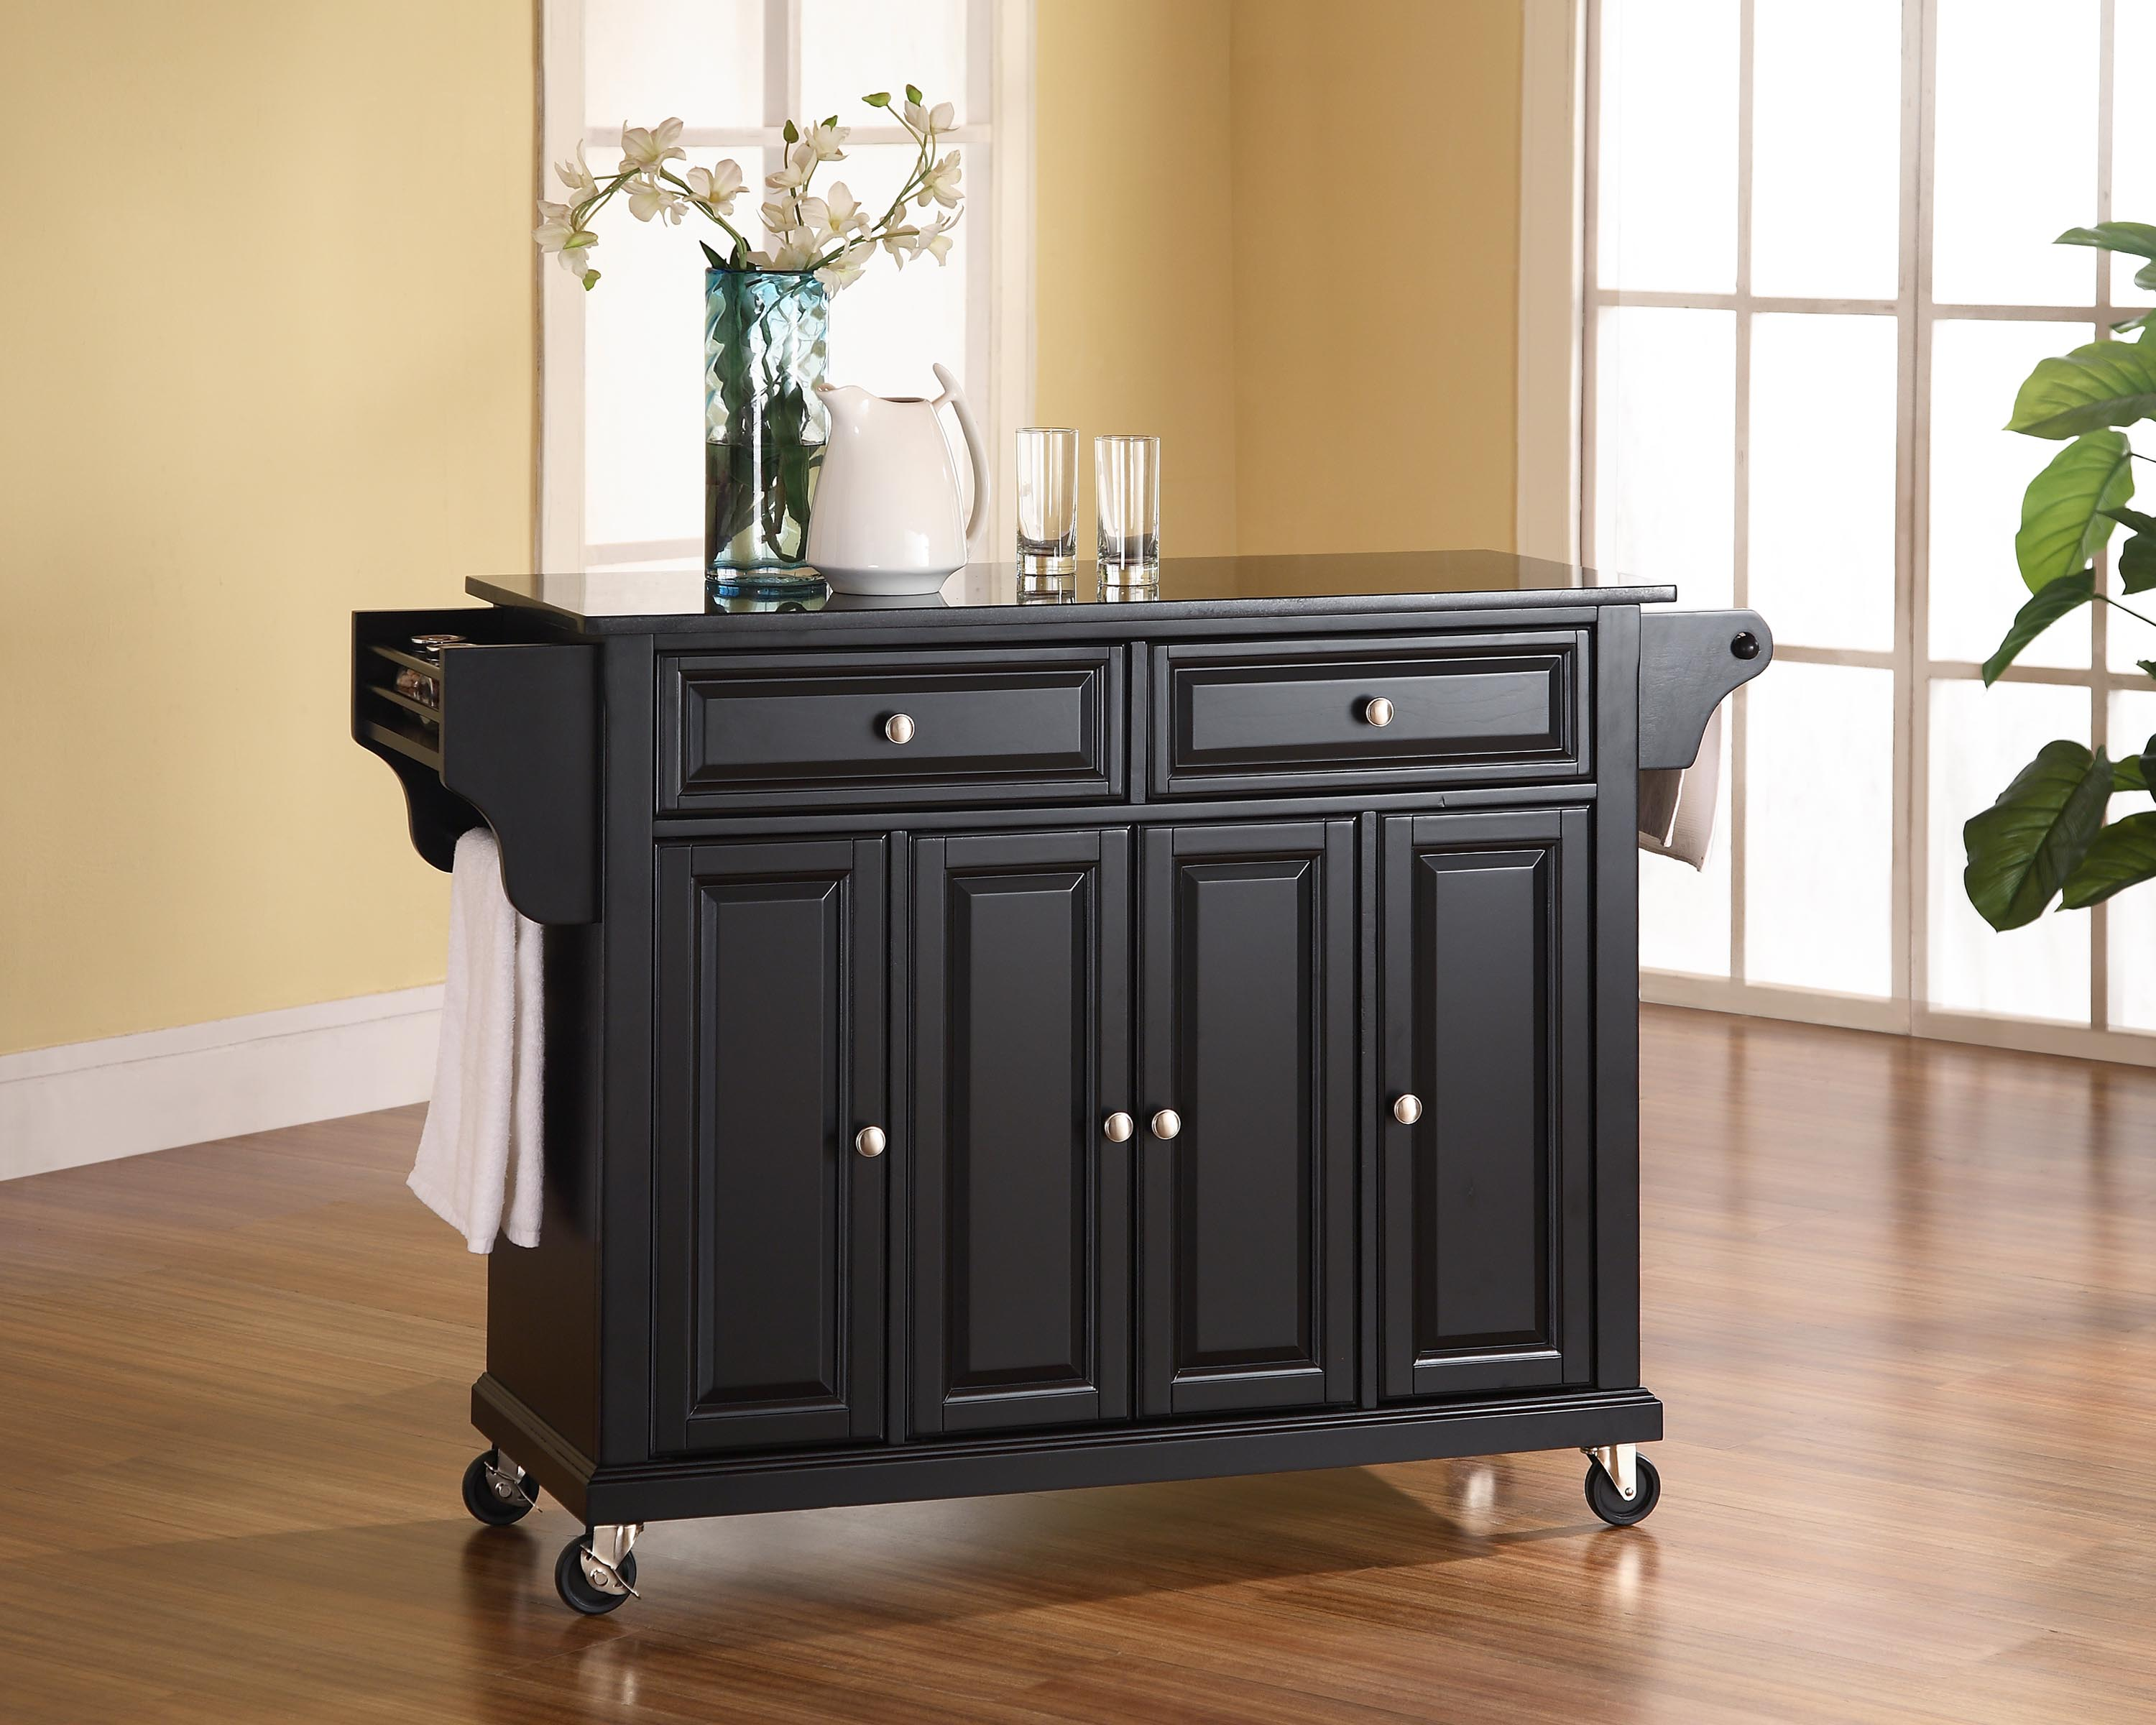 wheels for kitchen island best kitchen island on casters homesfeed 6851